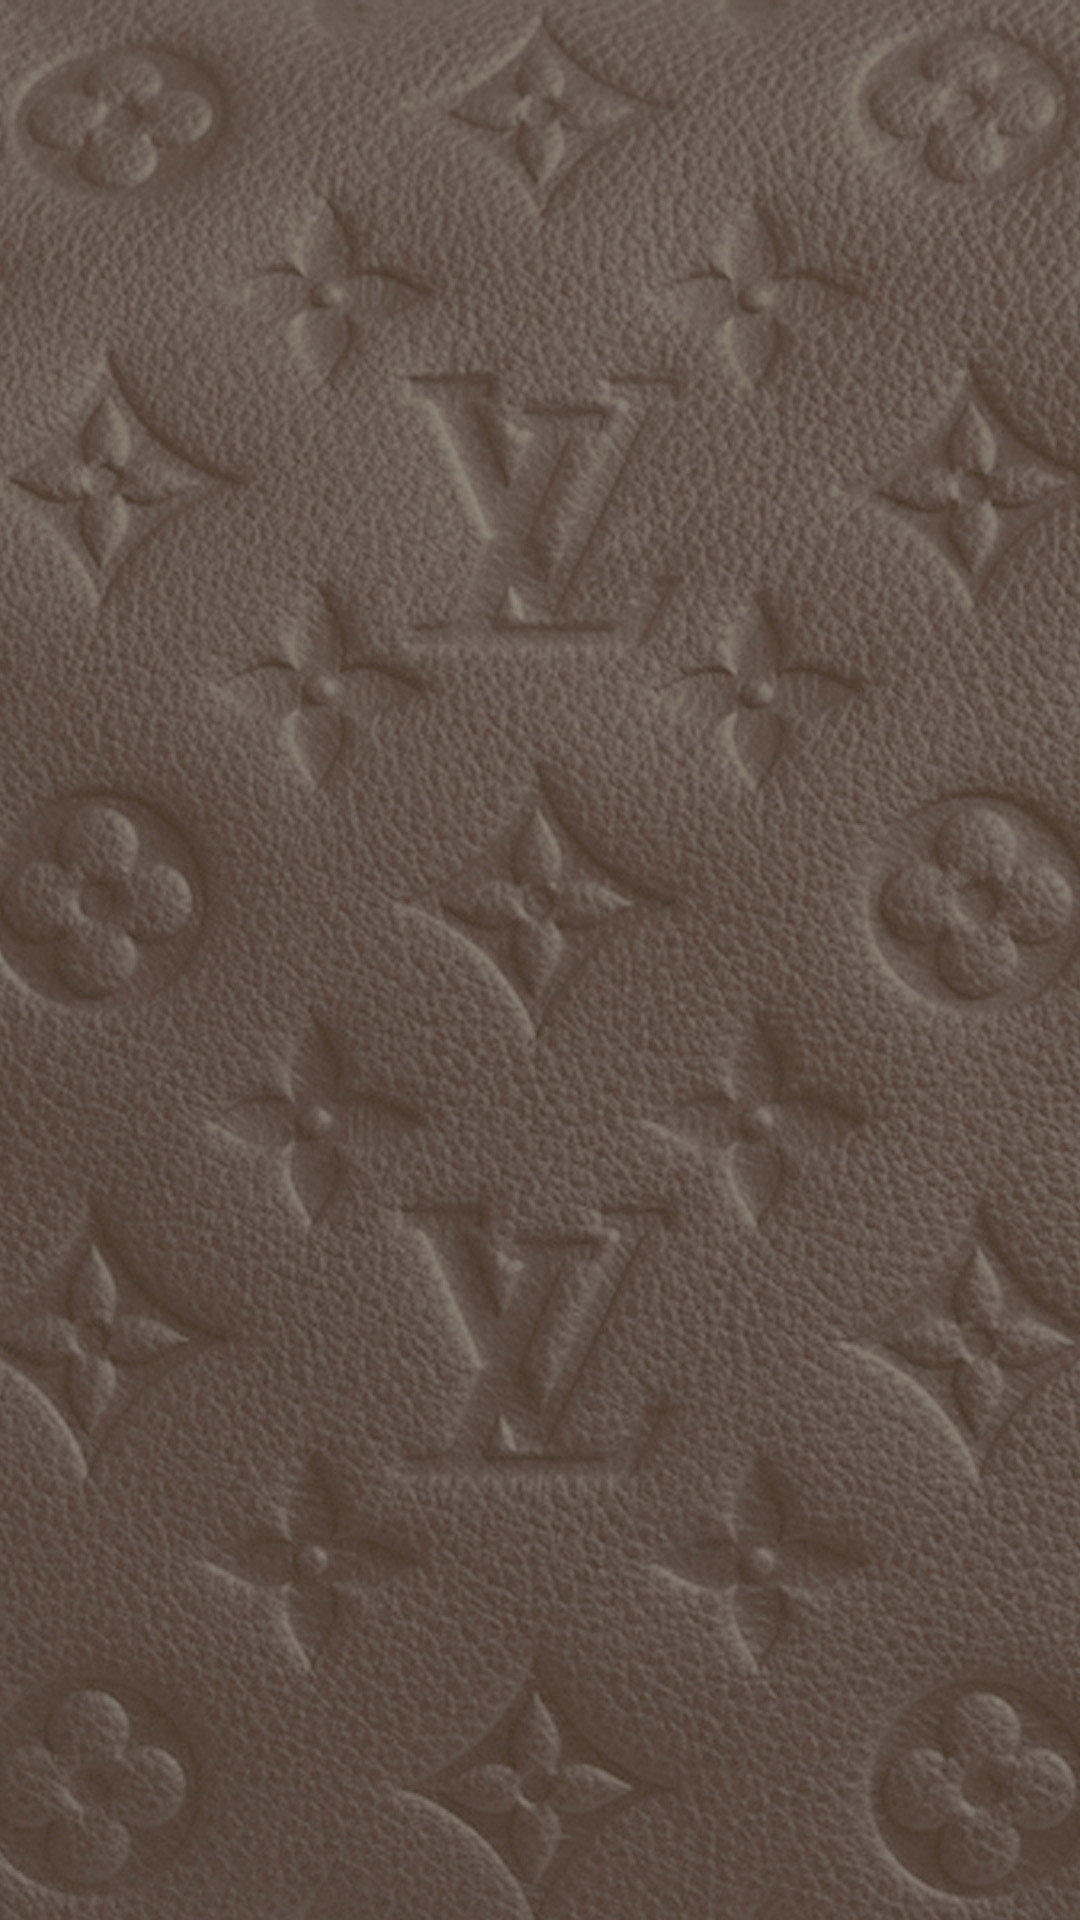 Popular Wallpaper Macbook Louis Vuitton - 469332  Pic_45618.jpg